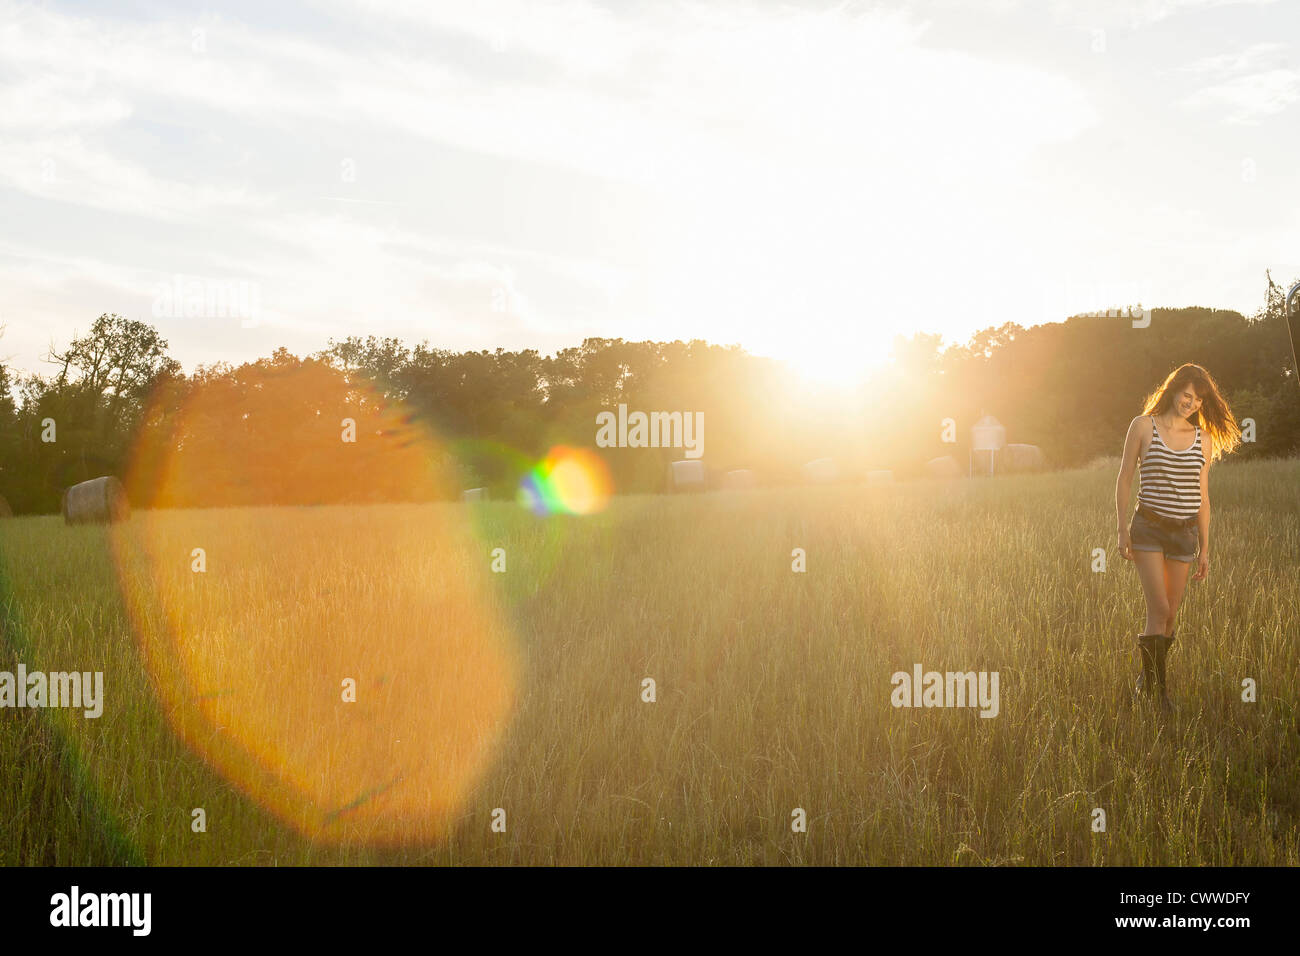 Smiling woman walking in grassy field Banque D'Images